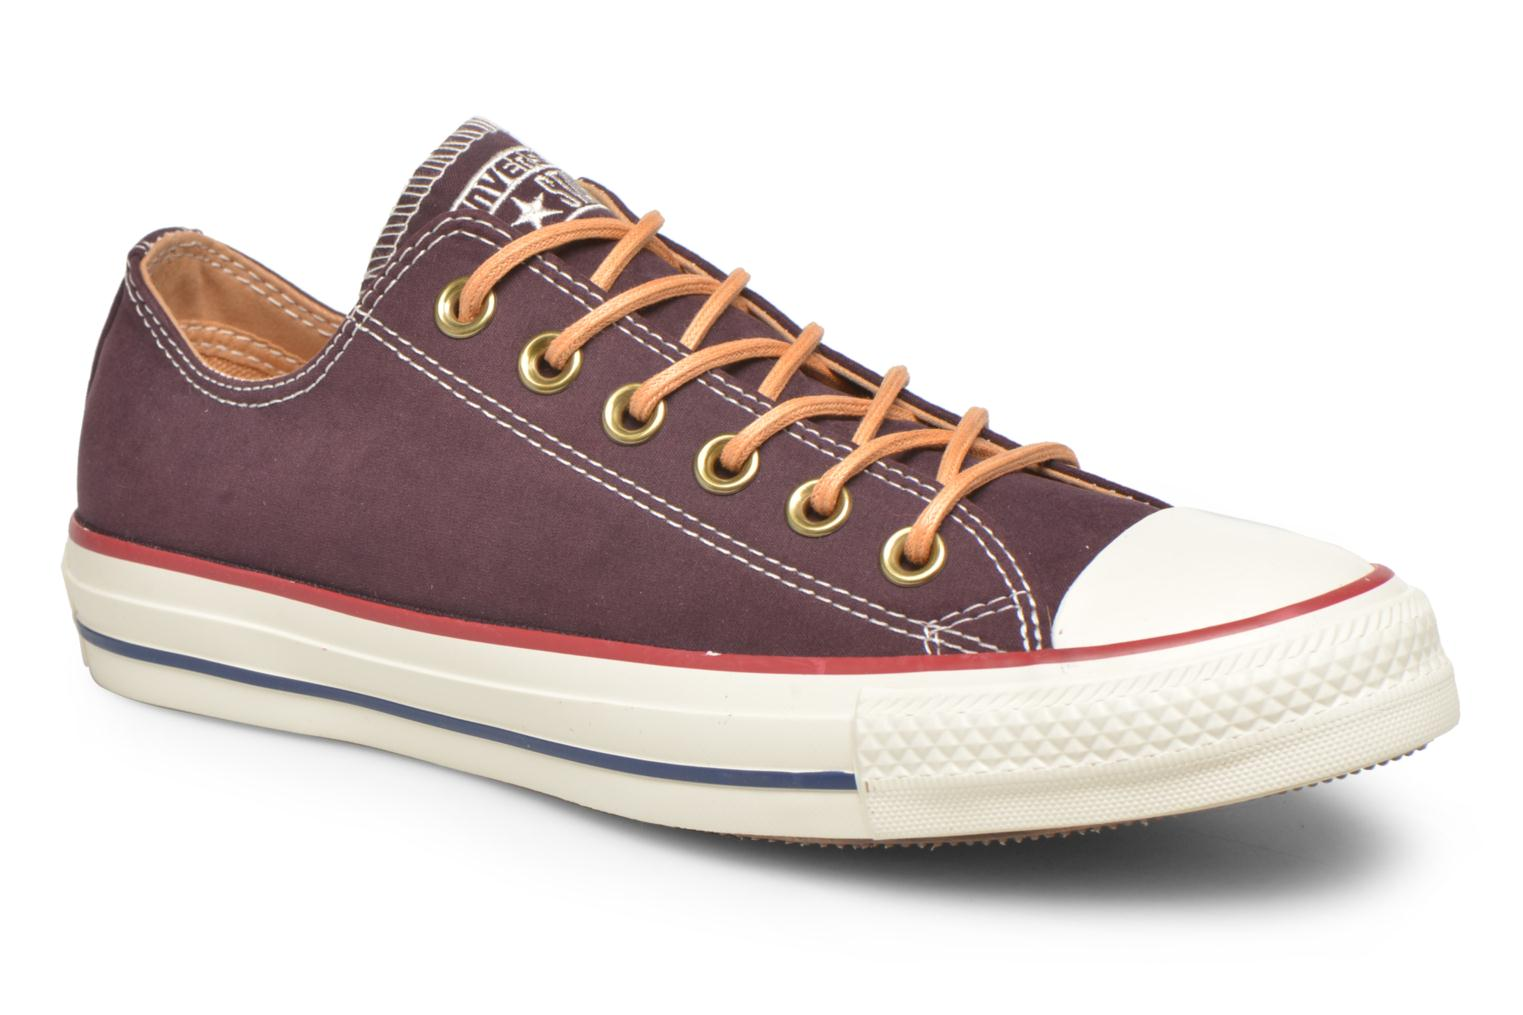 Chuck Taylor All Star Ox W Black Cherry/Biscuit/Egret